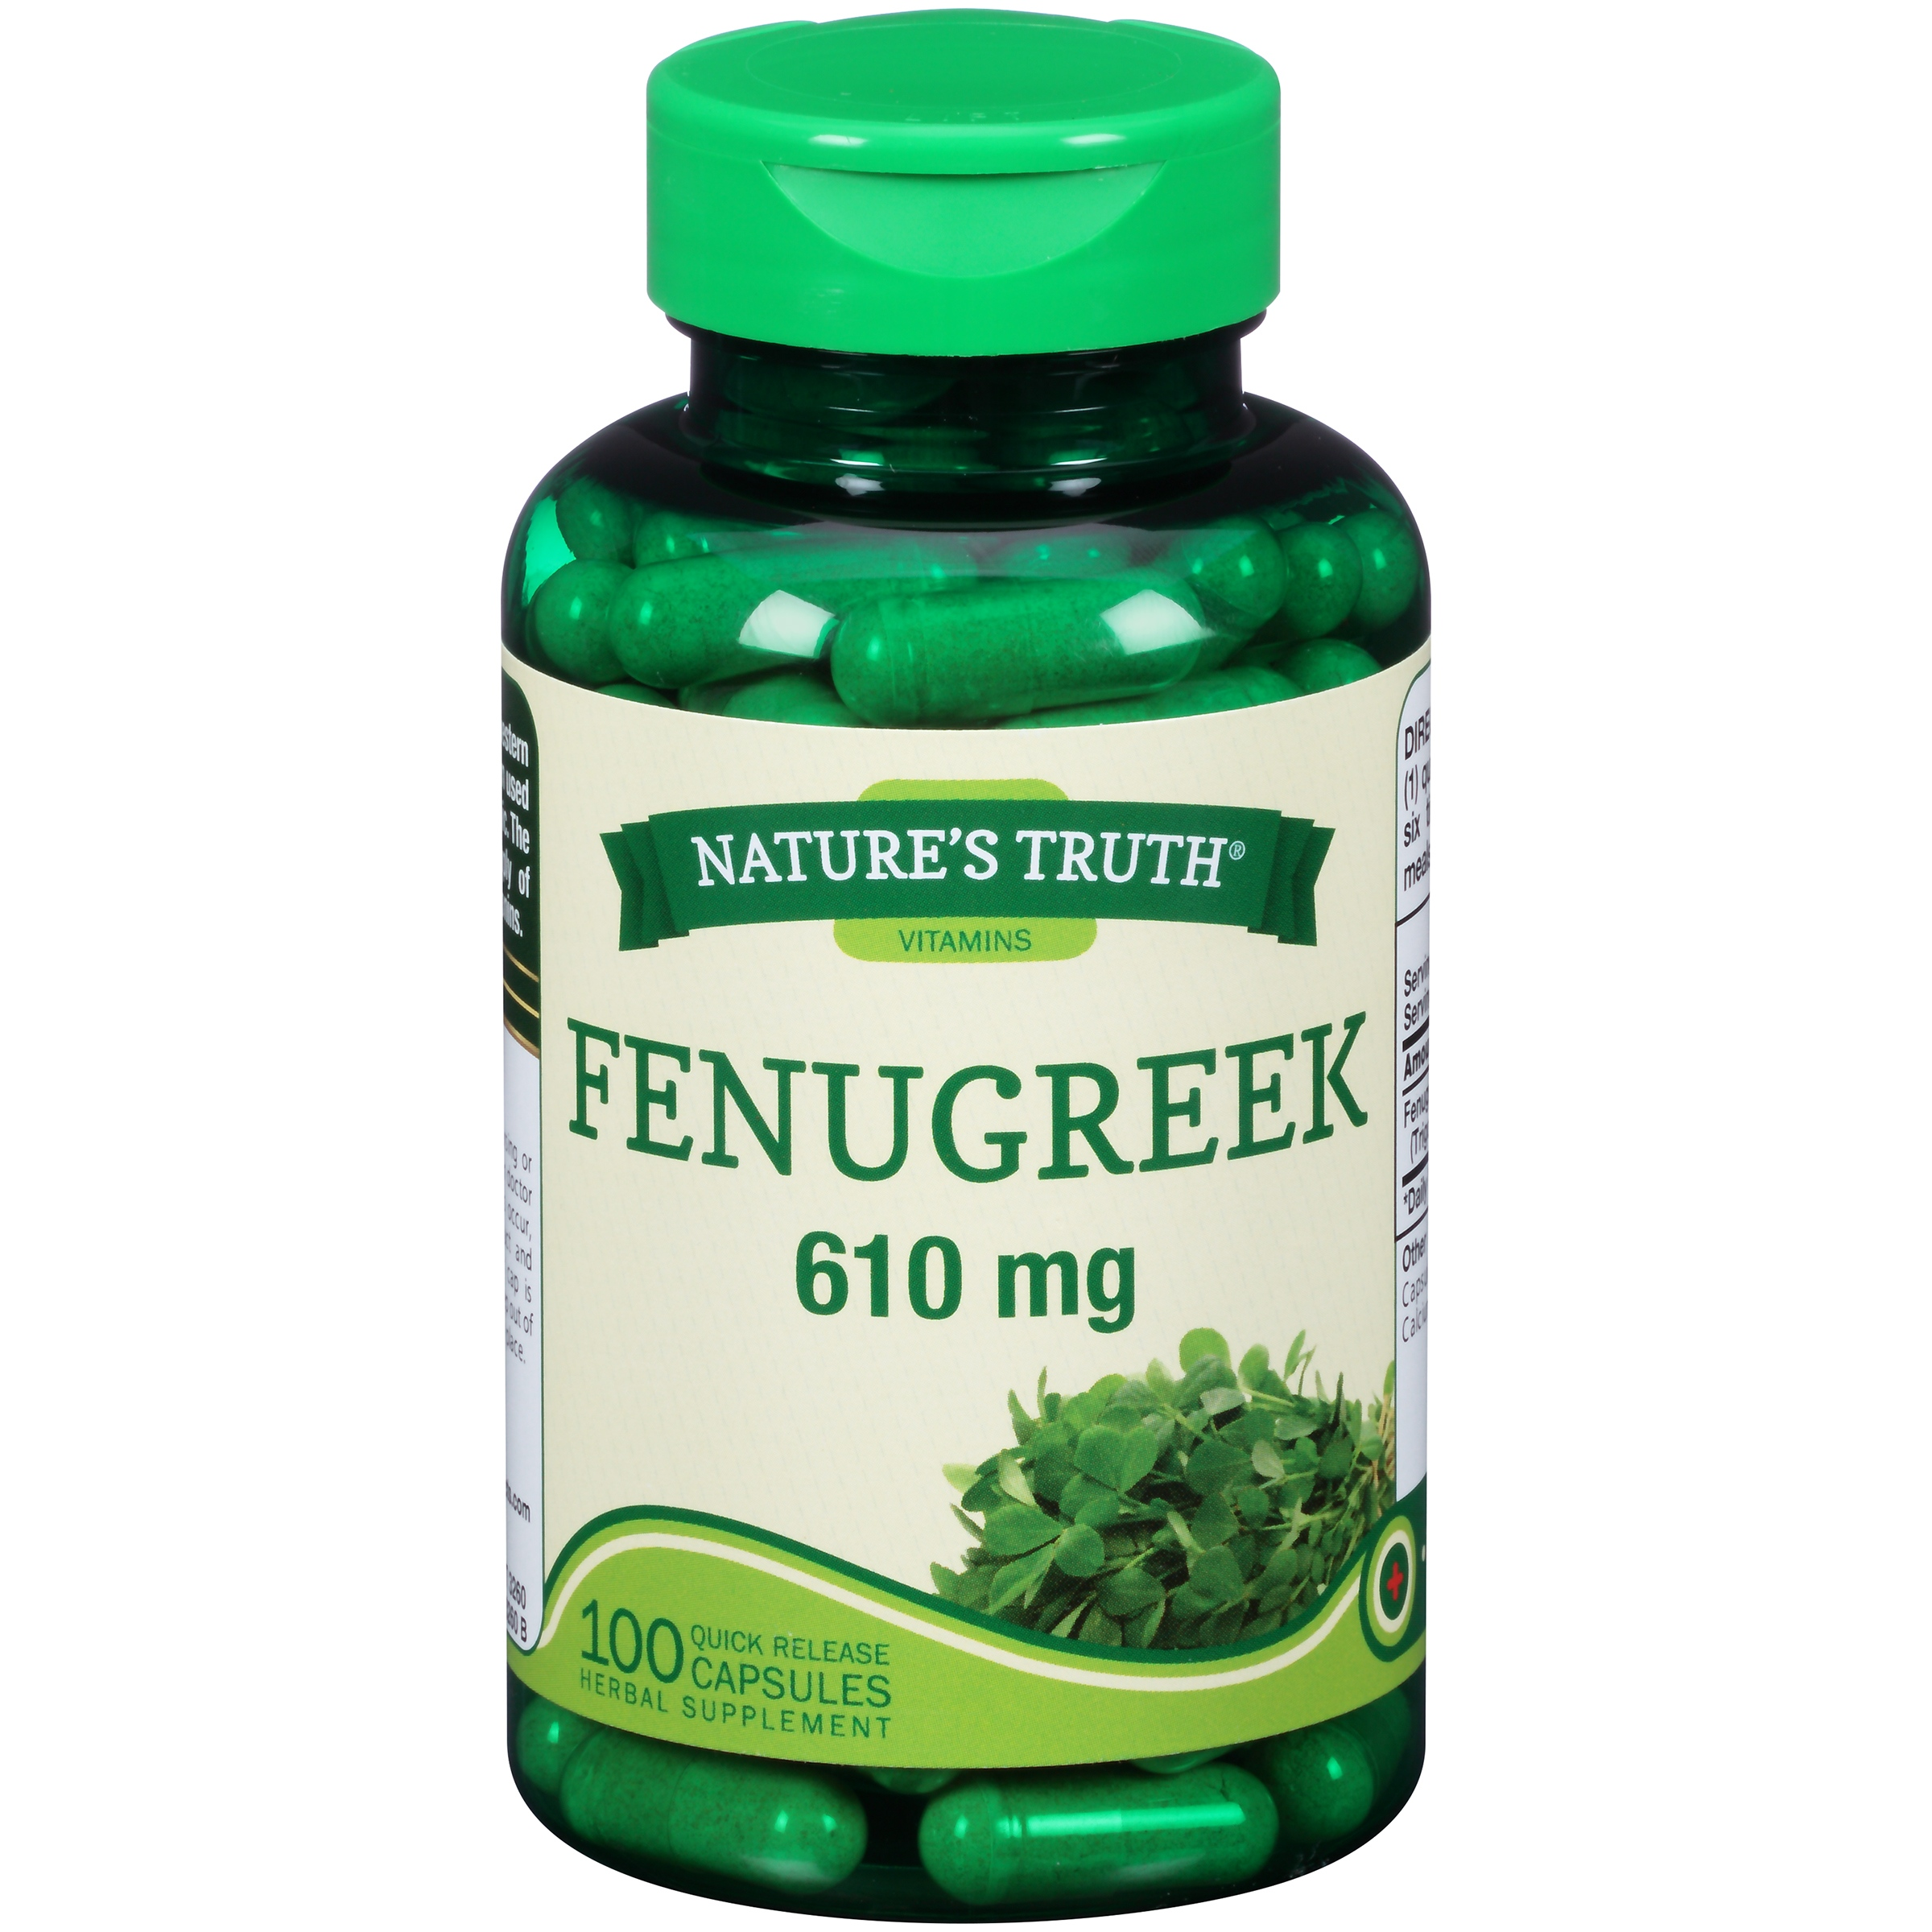 Nature's Truth® Fenugreek 610mg Herbal Supplement Quick Release Capsules 100 ct Bottle